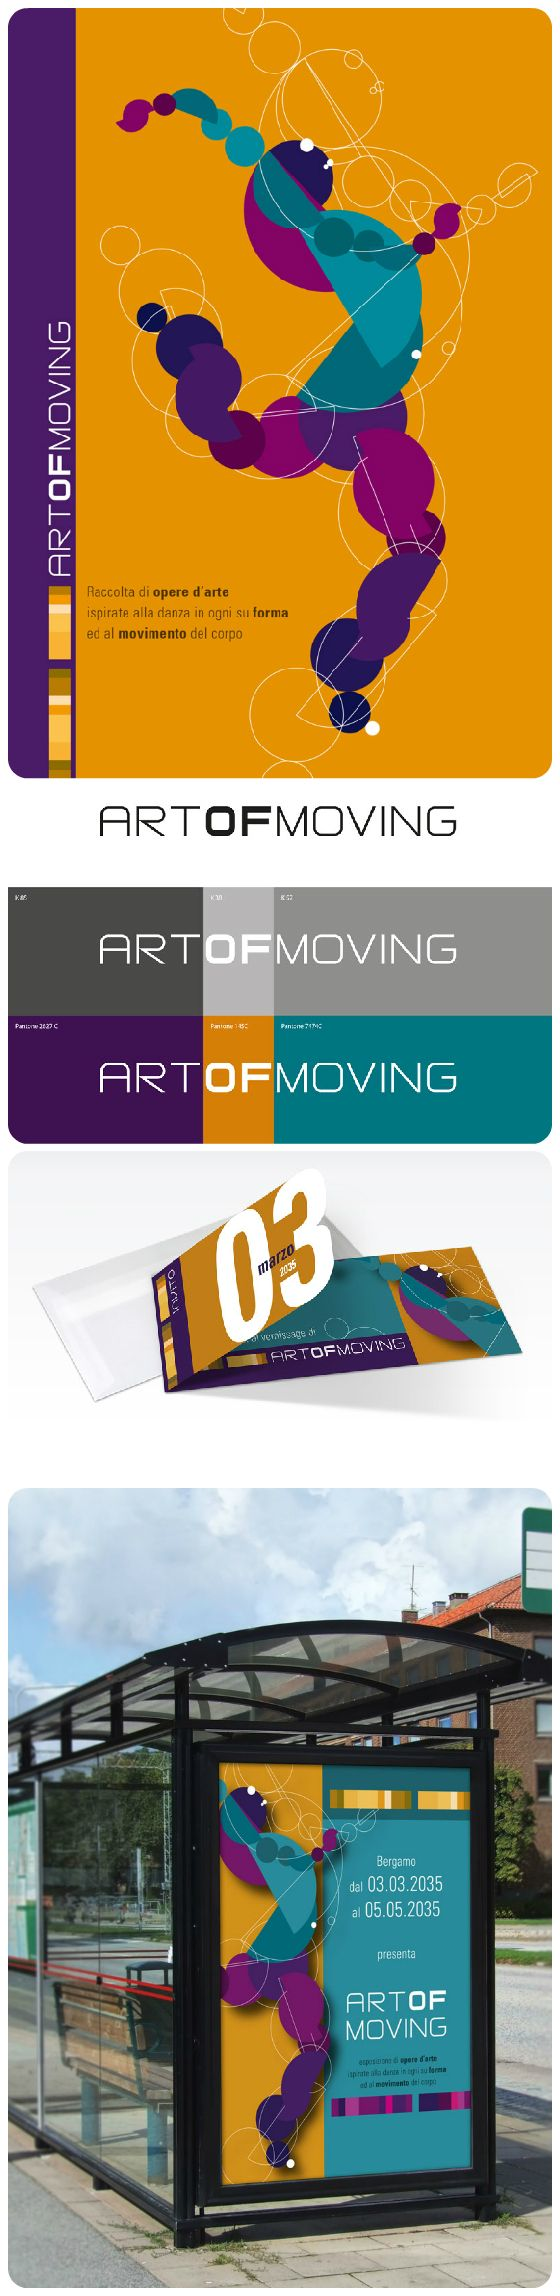 #moving #art #graphicdesign